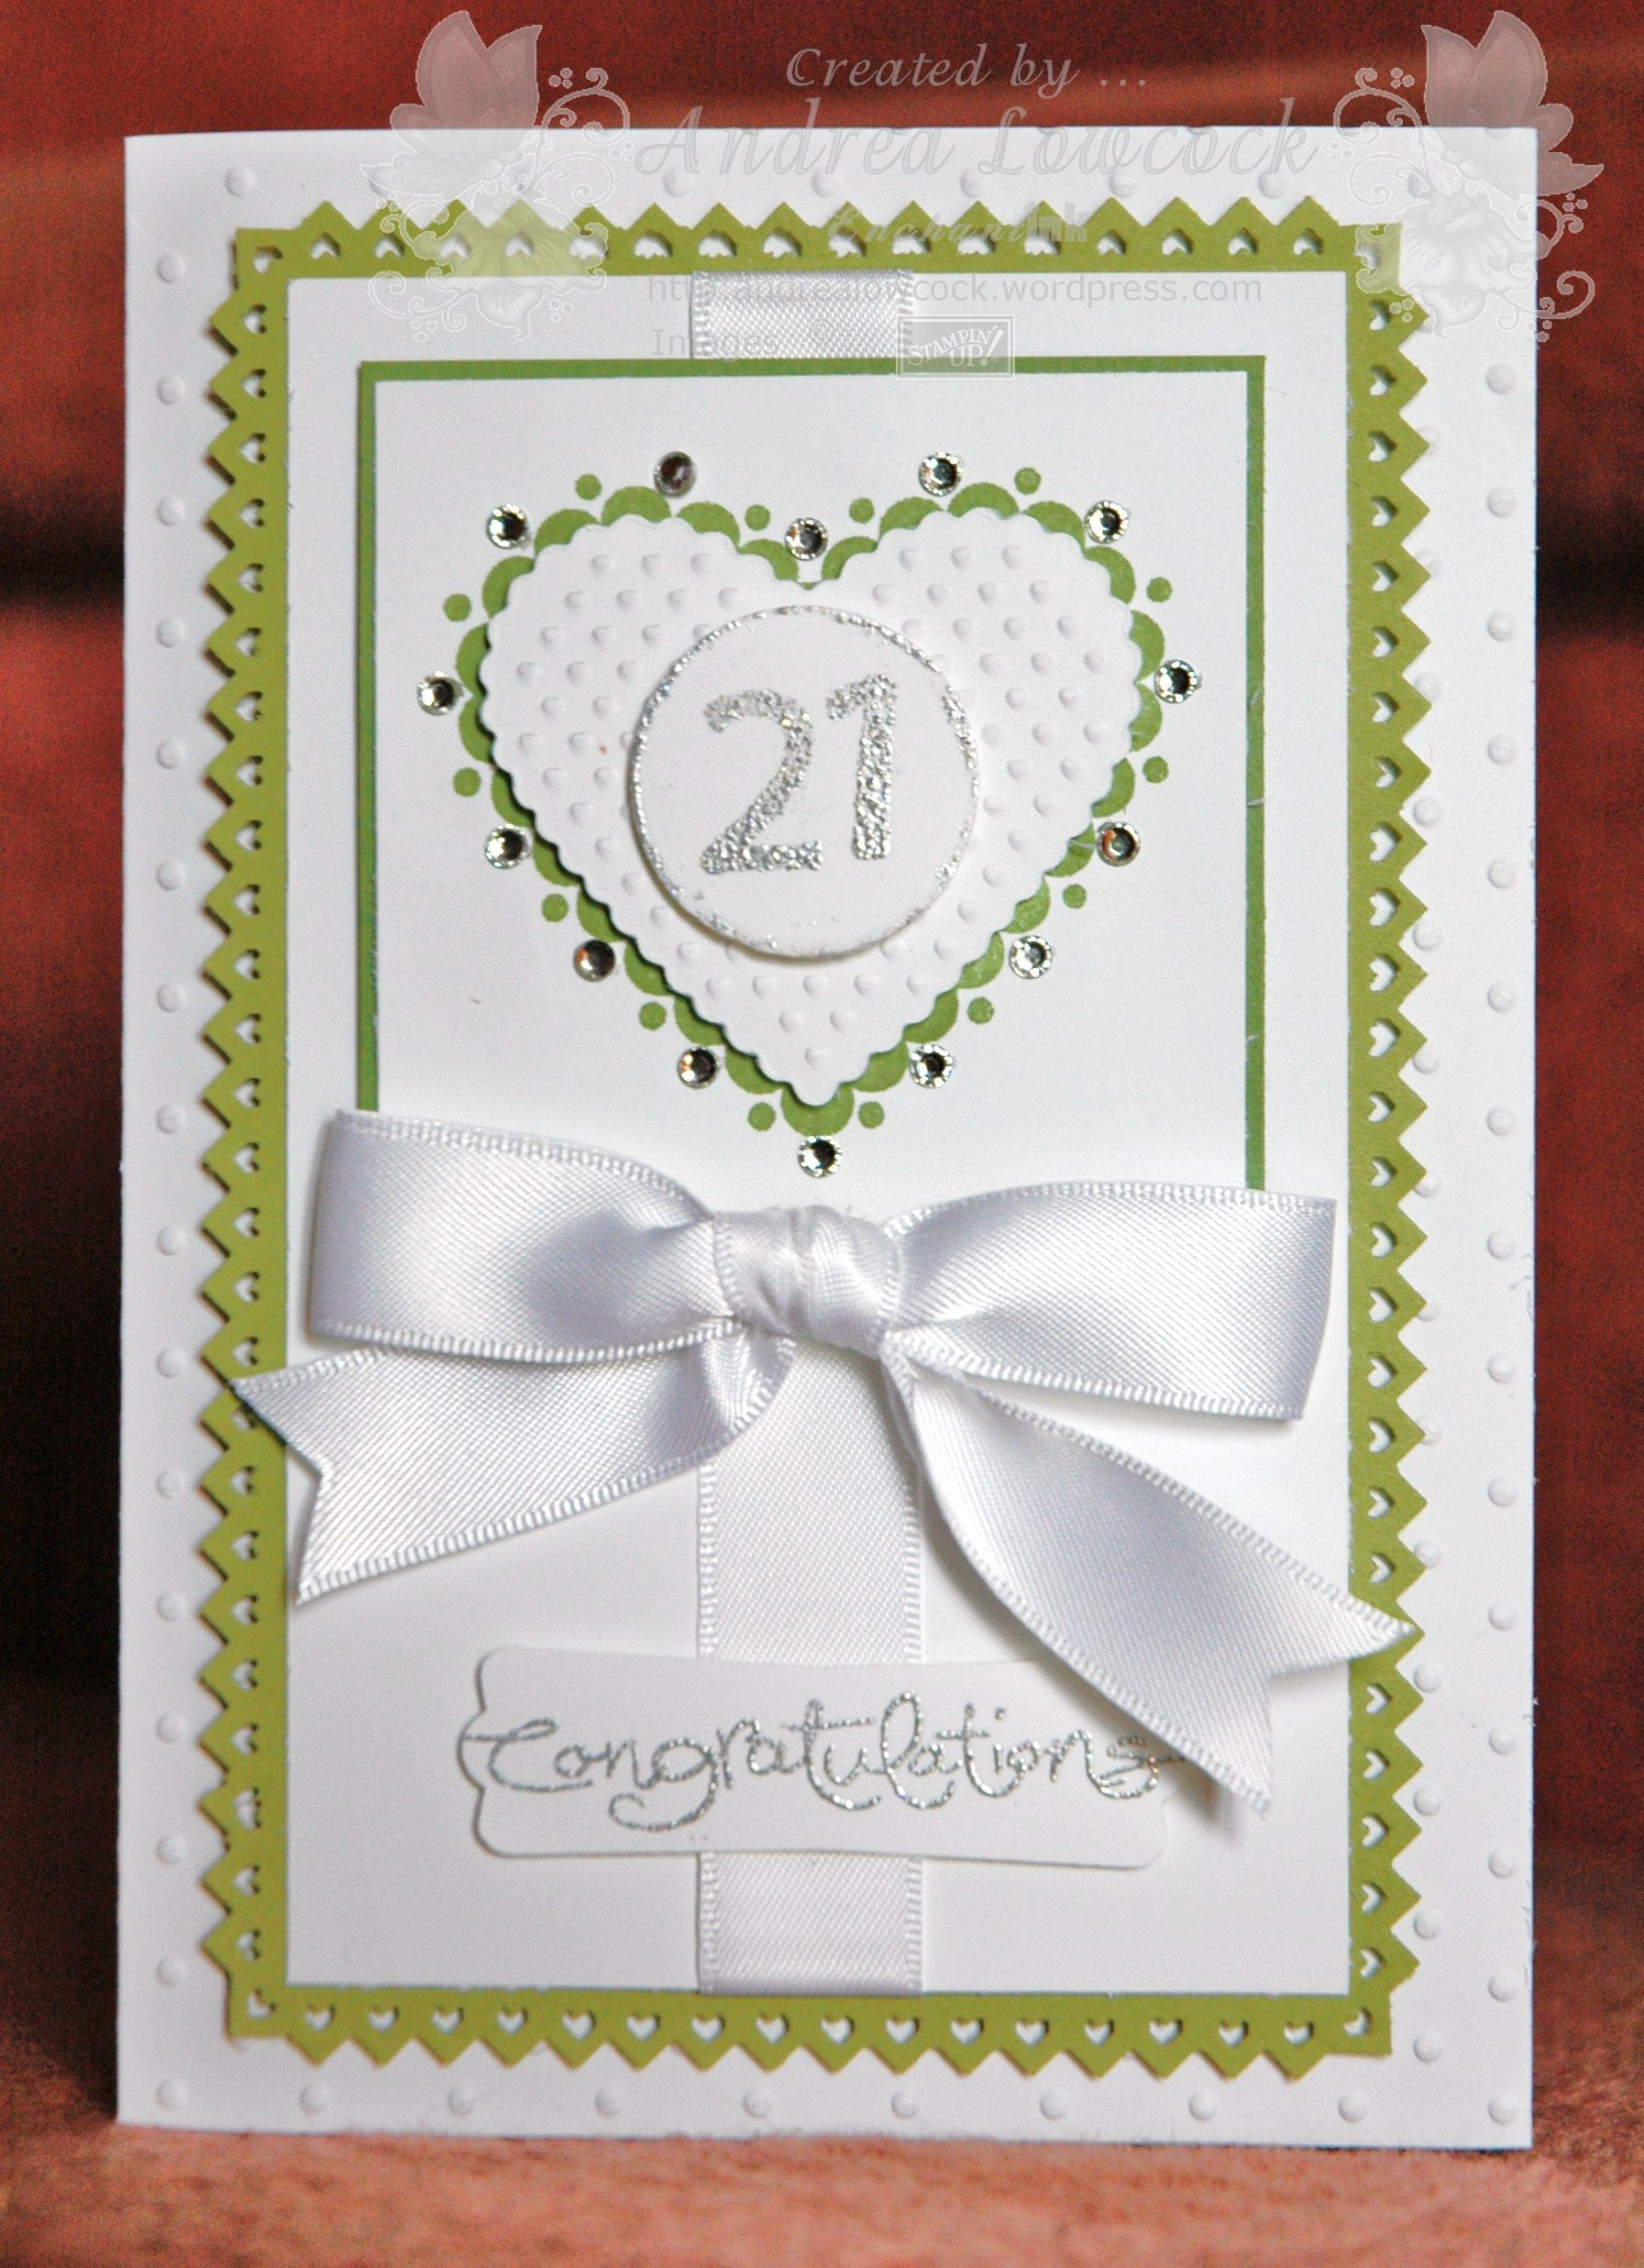 Card Making Ideas 21st Birthday Part - 34: Handmade 21st Birthday Card ... Blog - EnchantINK ... Stampinu0027 Up